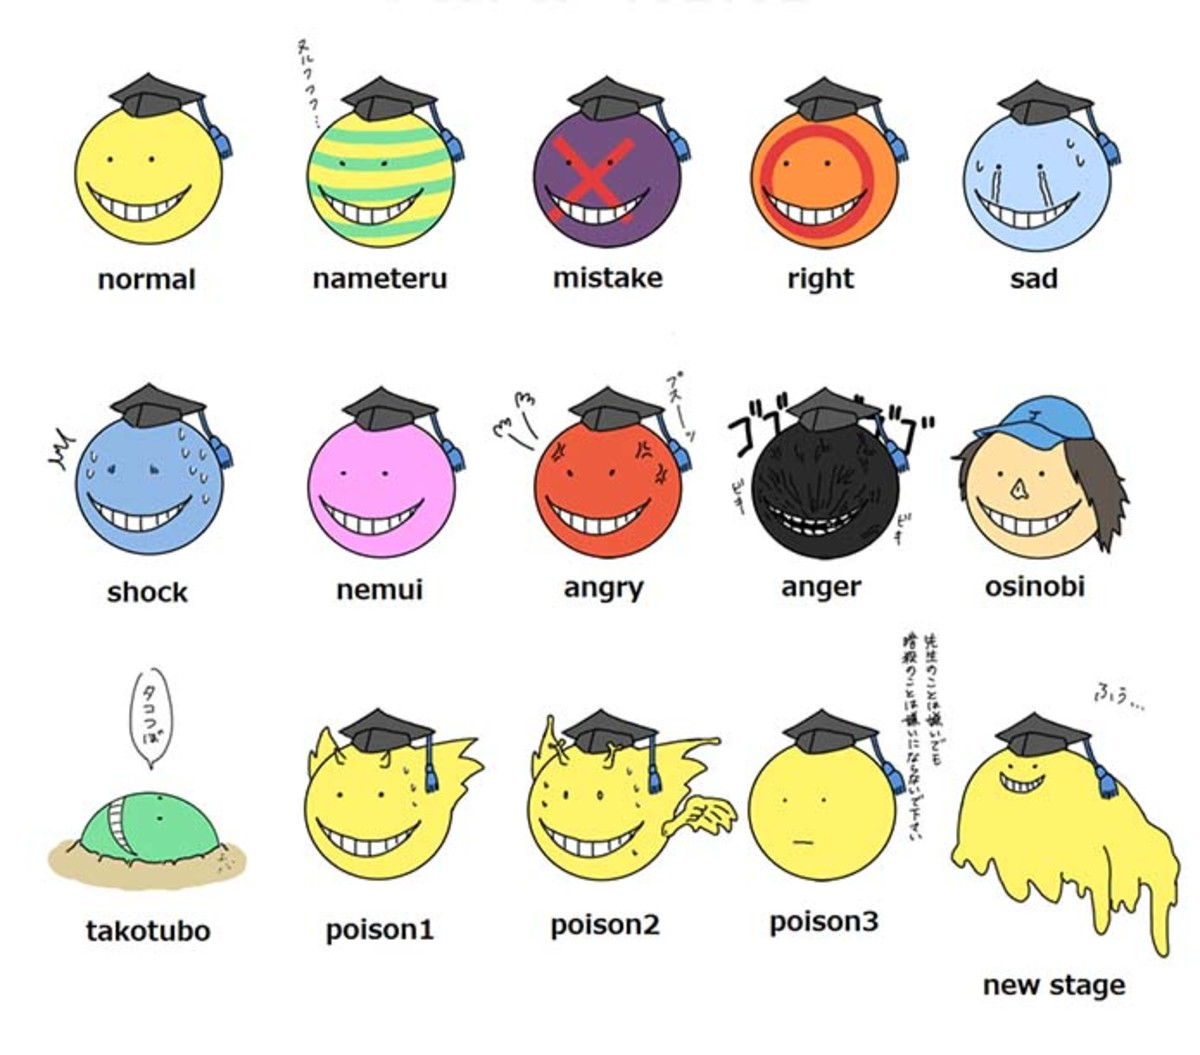 Korosensei's moods and emotions.